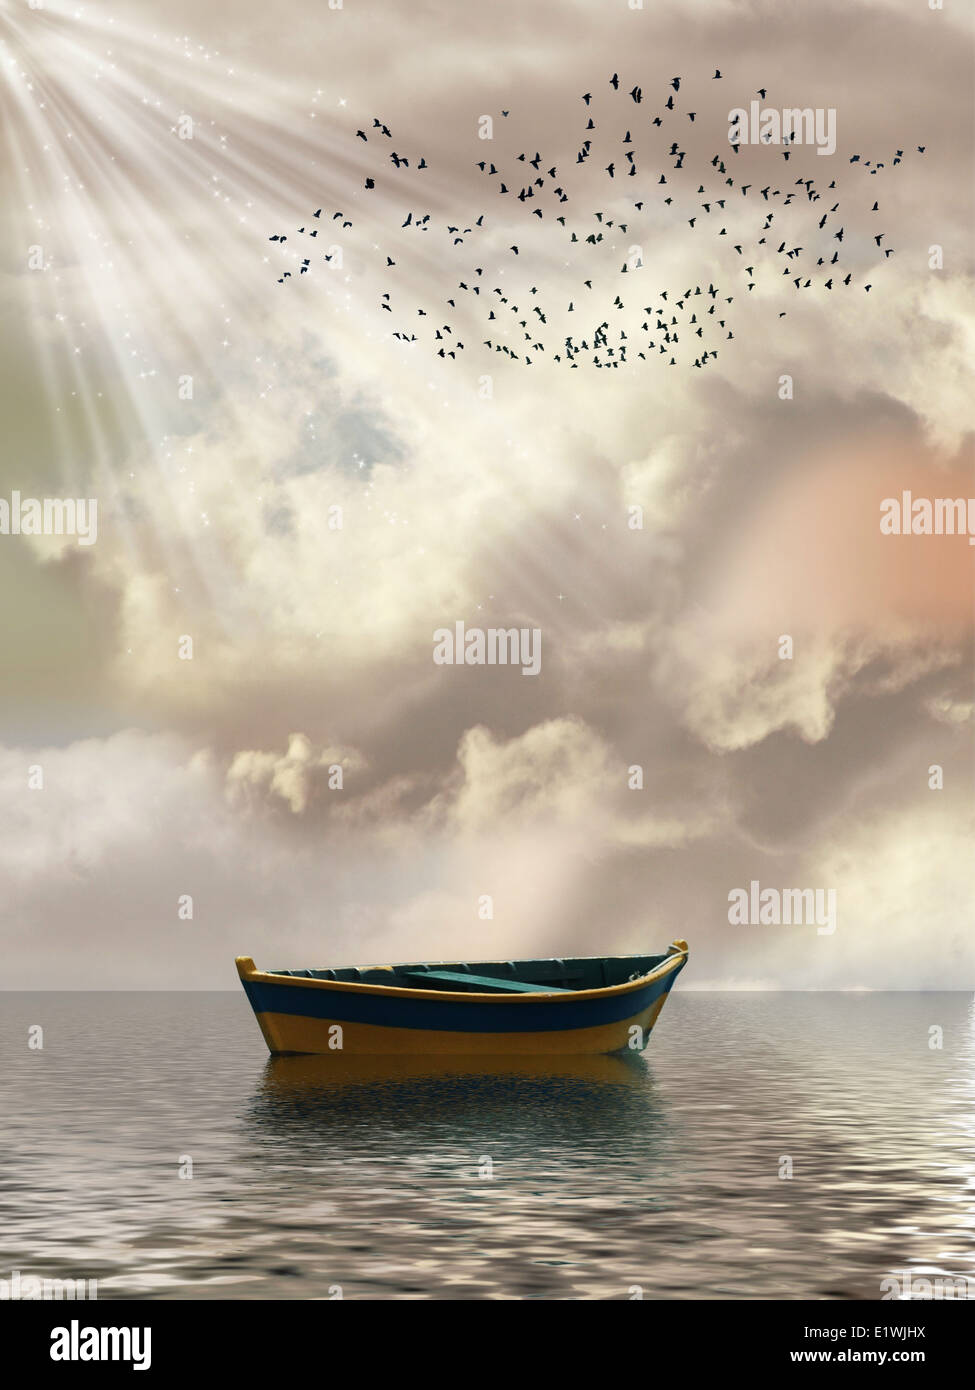 Fantasy Landscape in the ocean with boat and birds Stock Photo